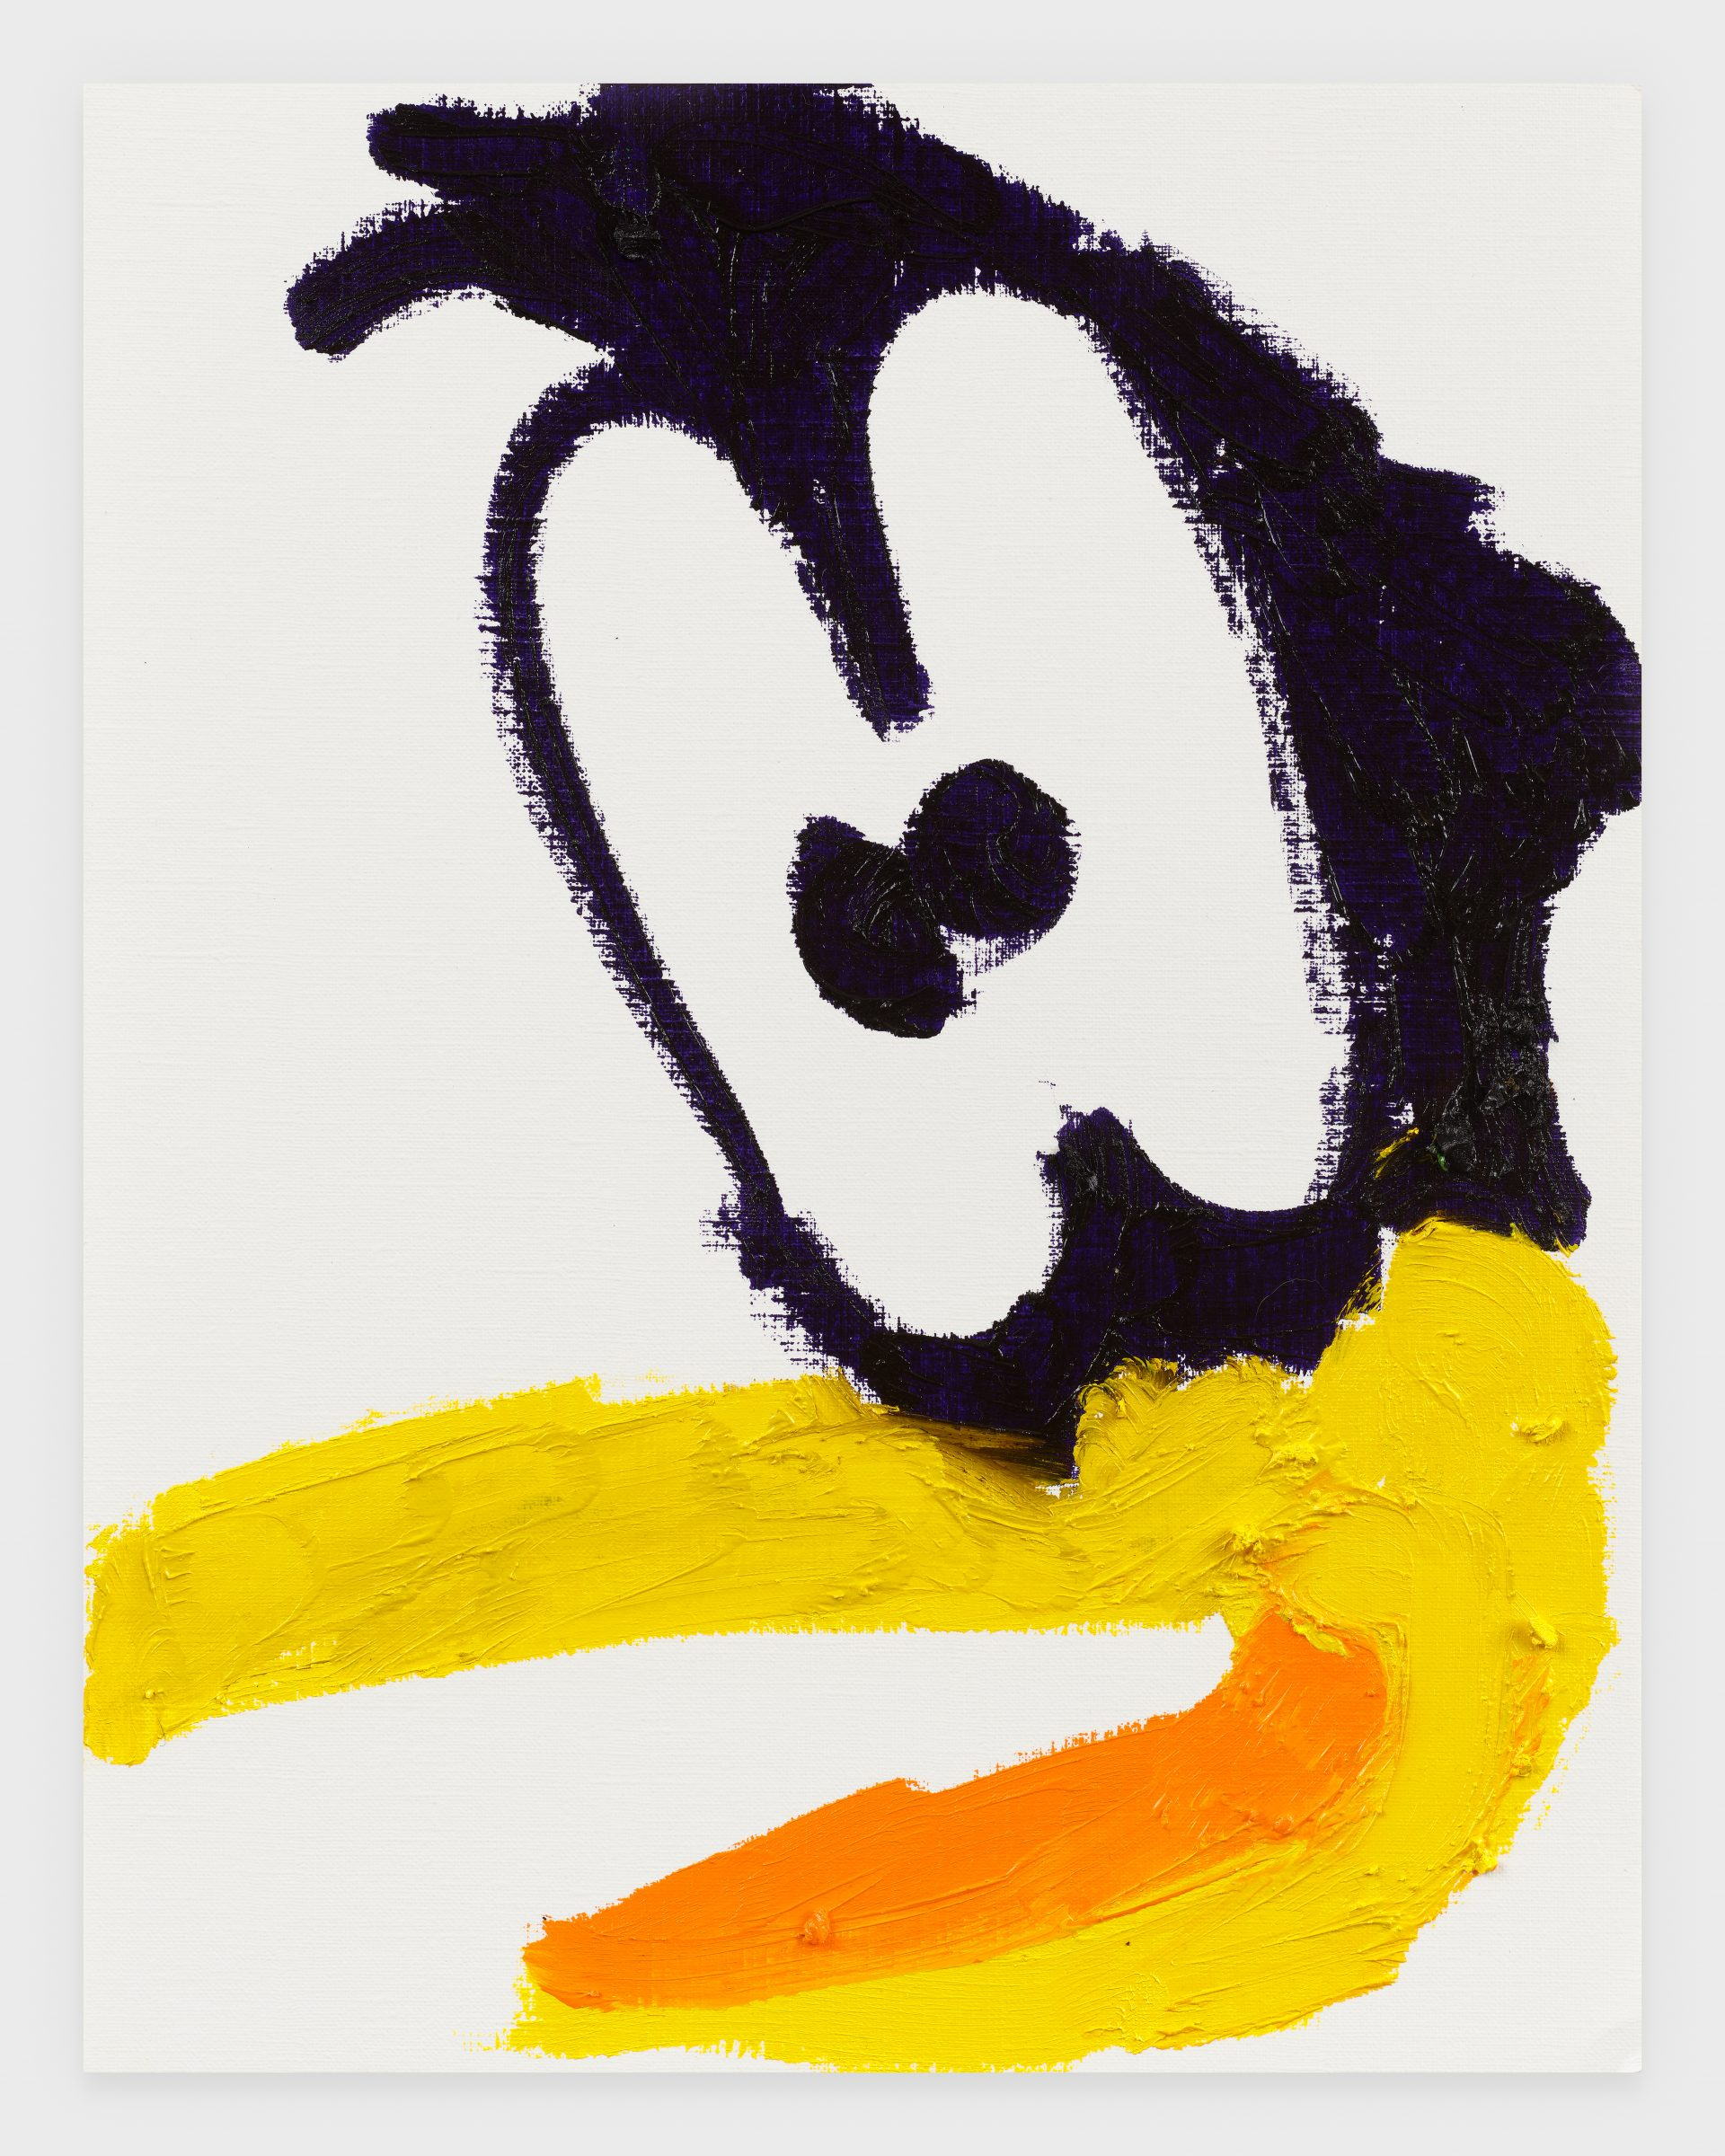 Daffy, 2020, Oil stick on archival paper, 11 x 14 inches